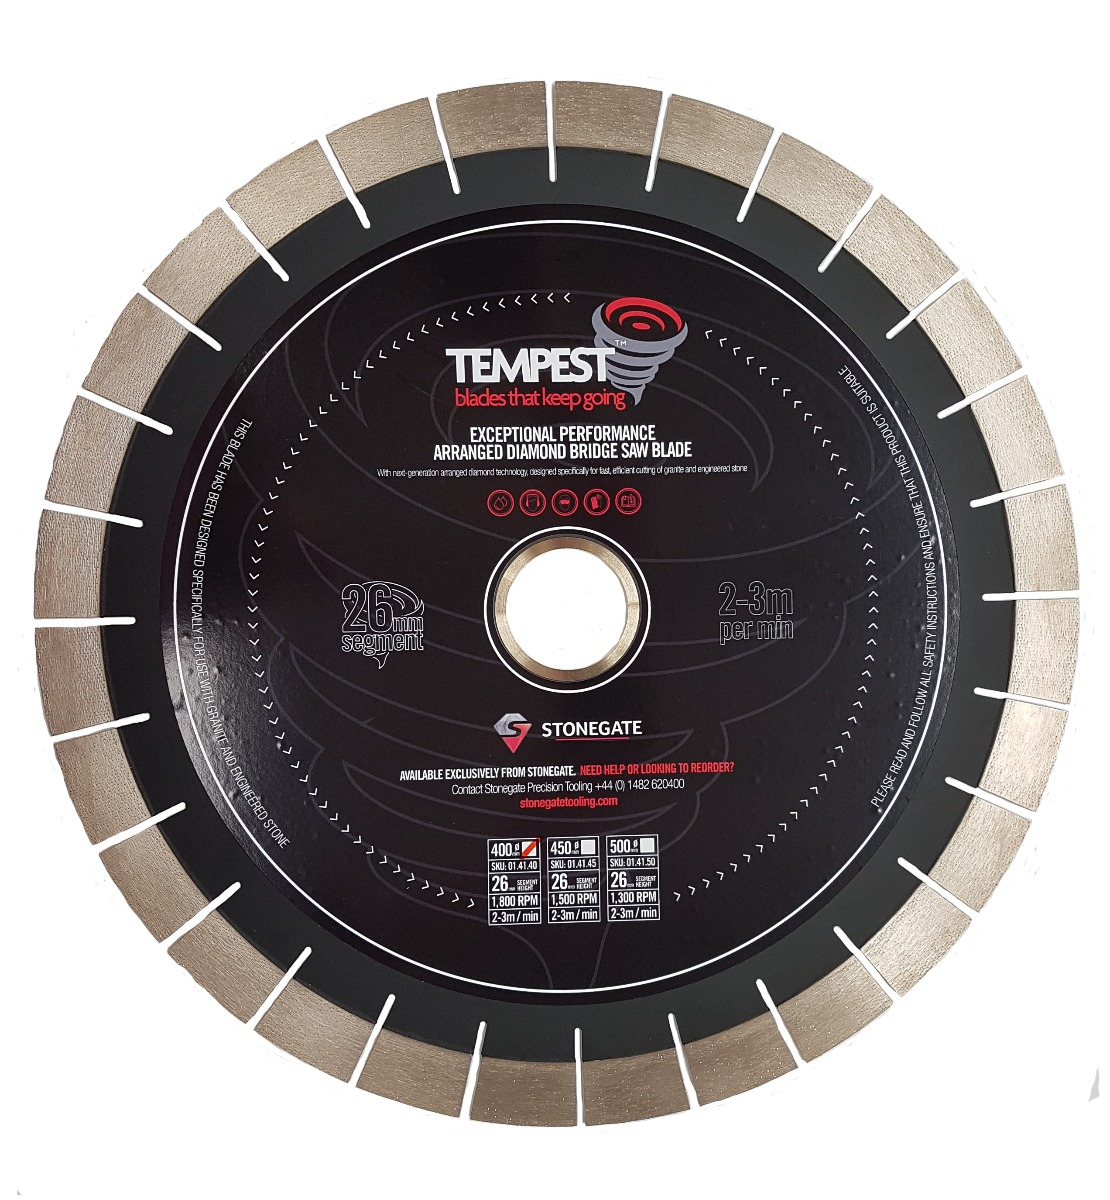 stongates the Tempest blade - Diamond bridgesaw blade